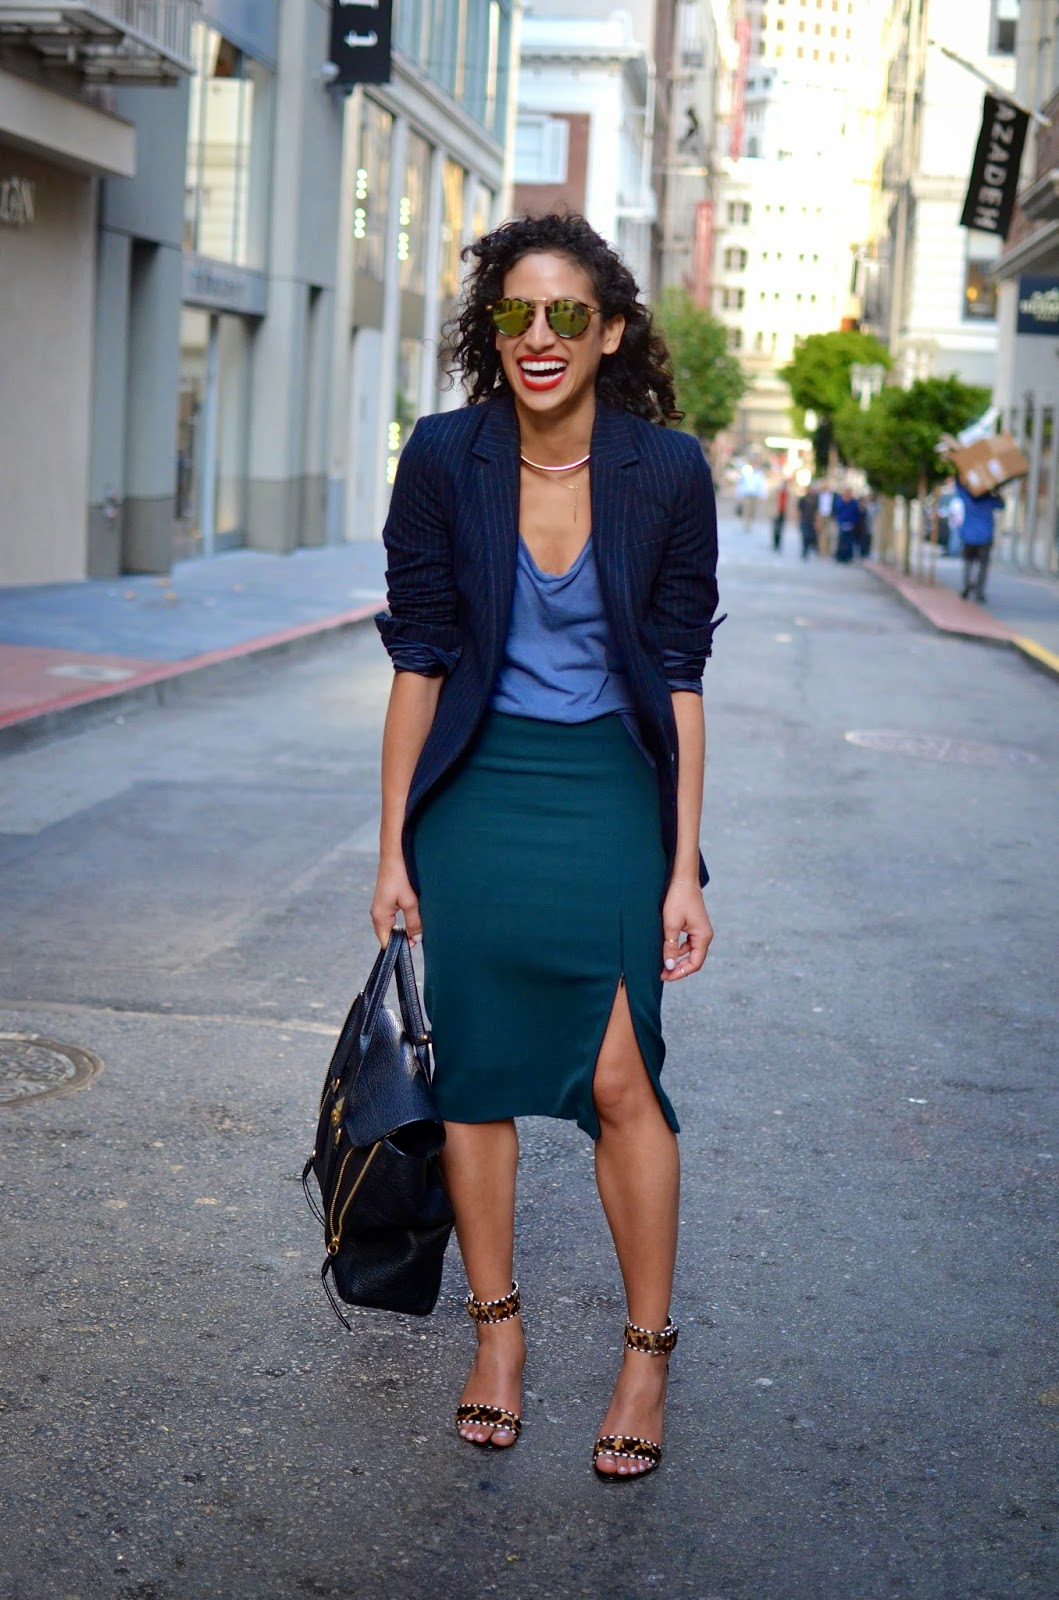 style in the city, maiden lane sf, red lipstick, Dress for Success power outfit